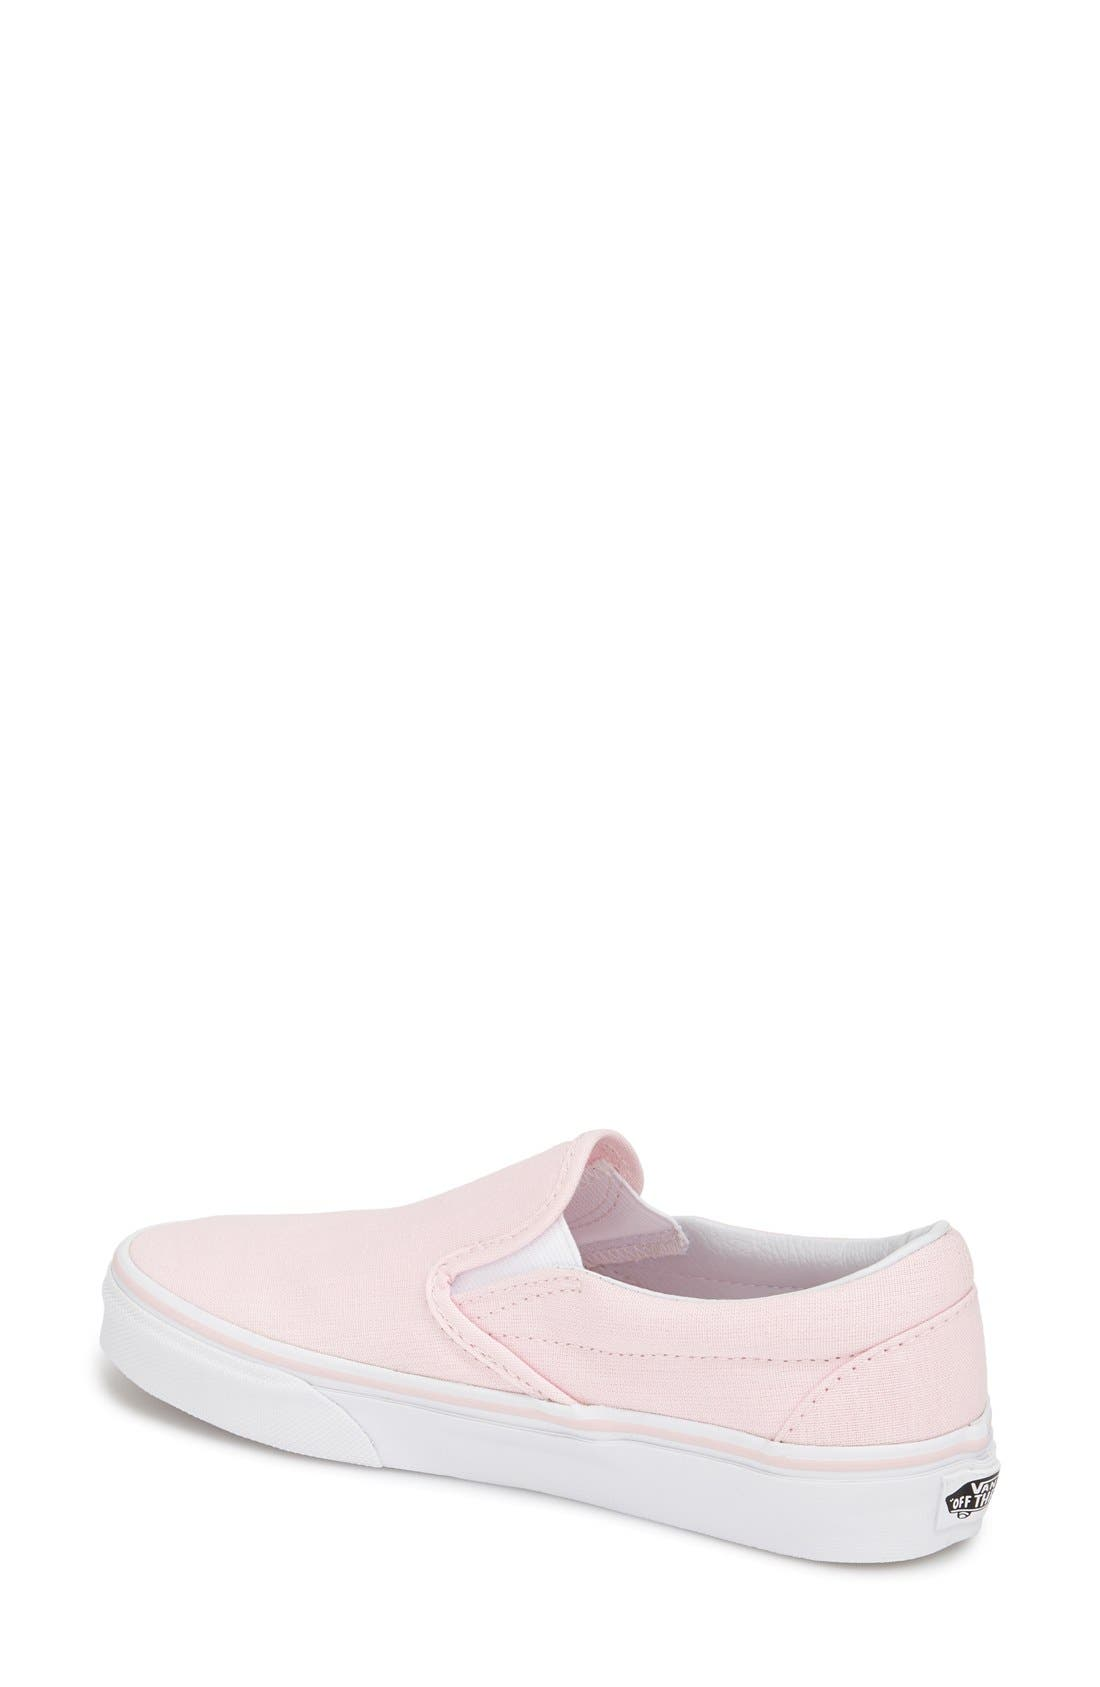 Classic Slip-On Sneaker,                             Alternate thumbnail 253, color,